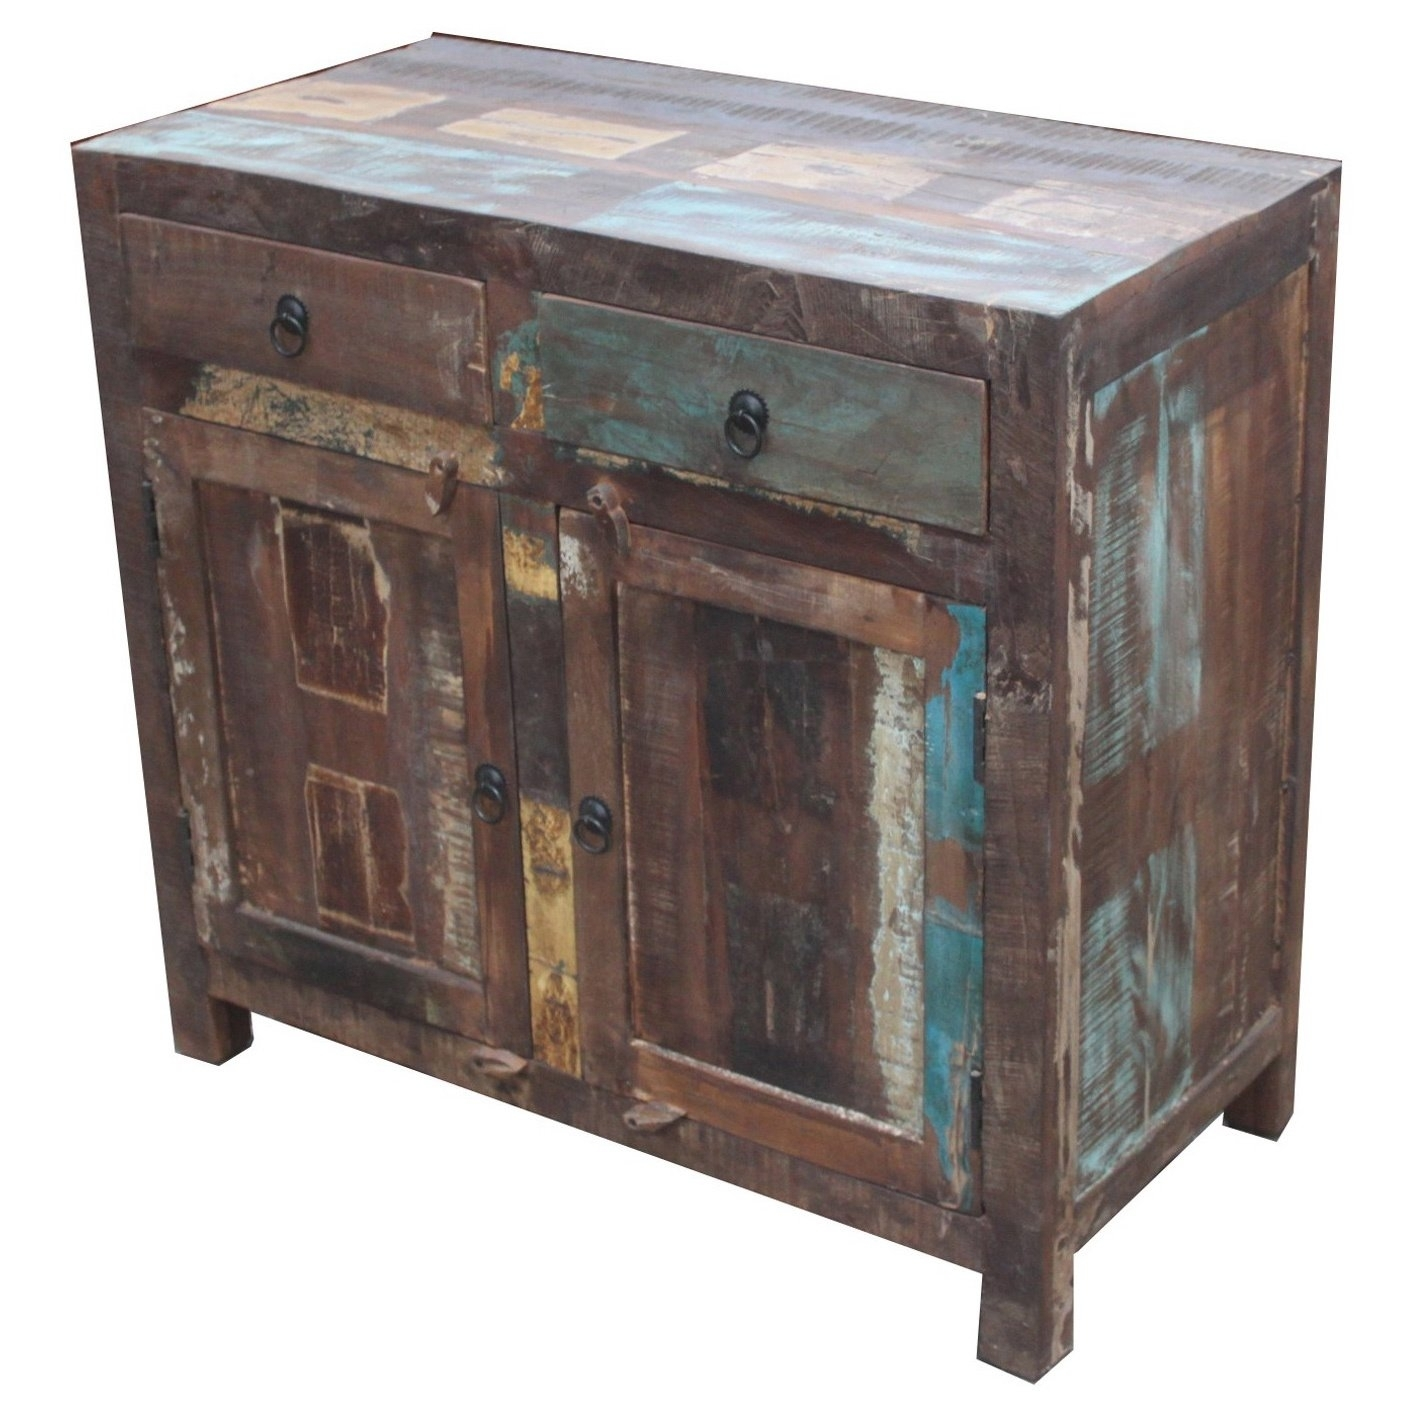 Shop Handmade Timbergirl Reclaimed Wood 2 Door Sideboard Cabinet For Most Up To Date Reclaimed Pine Turquoise 4 Door Sideboards (View 9 of 20)